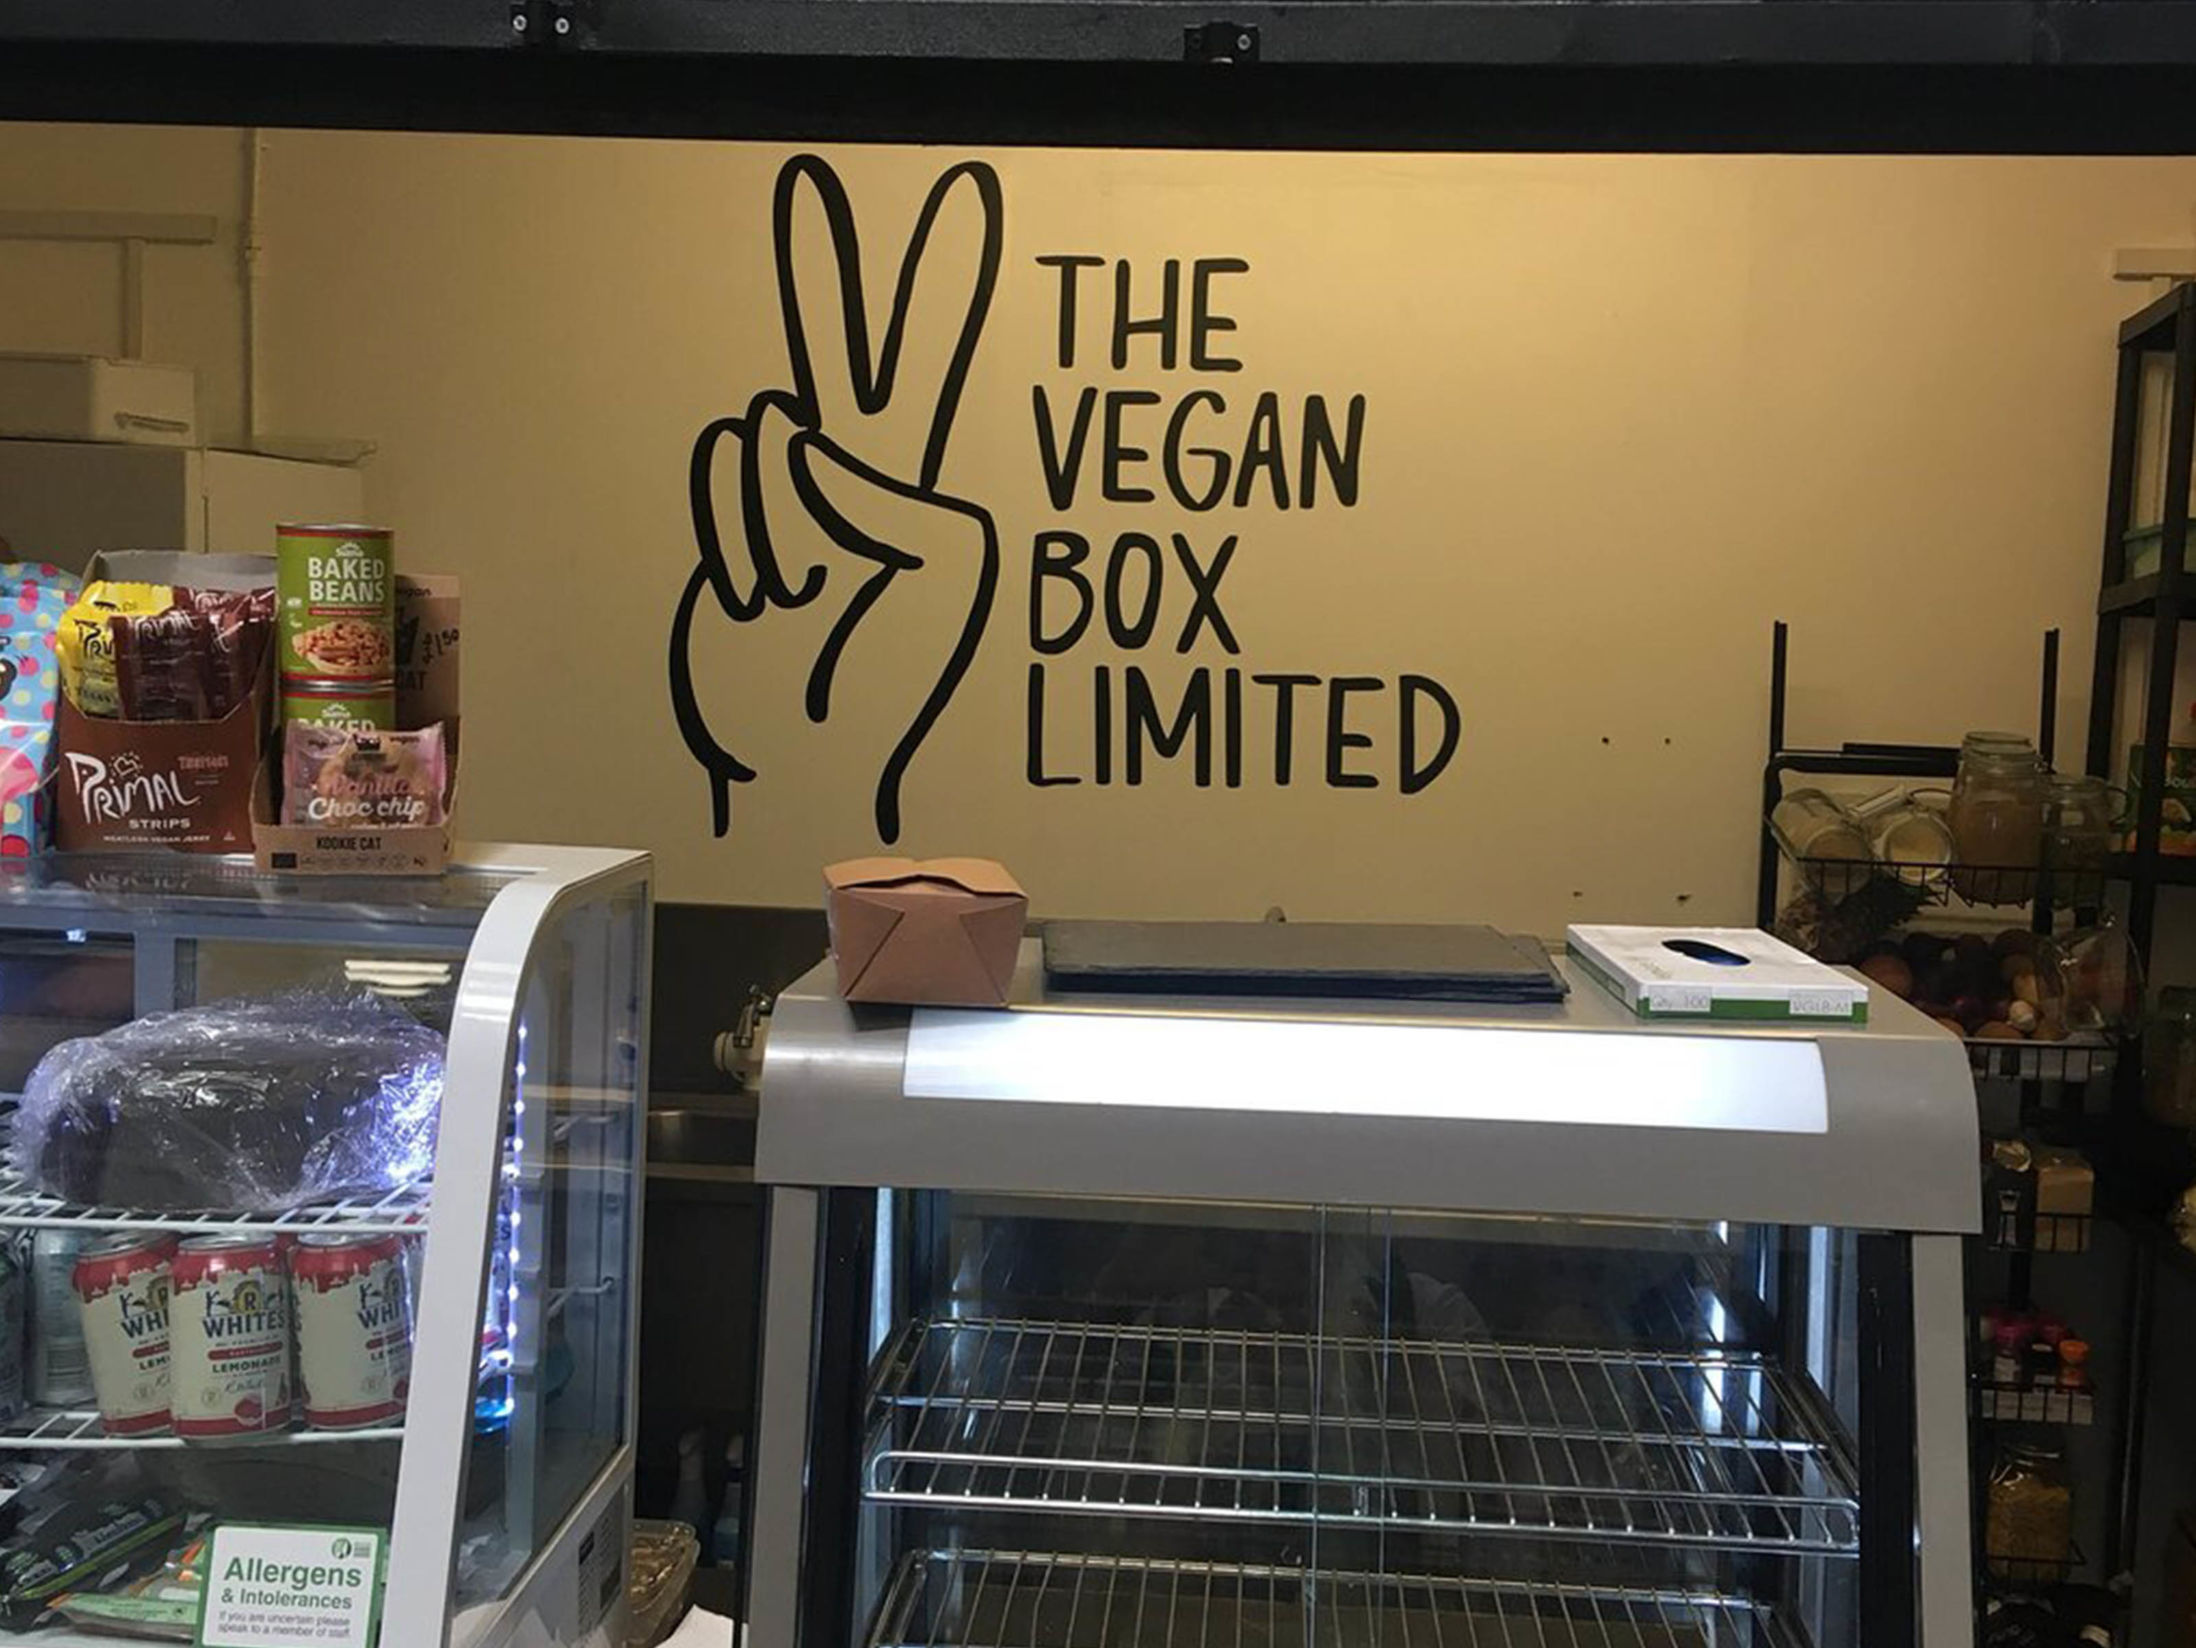 Best Vegan Restaurants in Cardiff - The Vegan Box